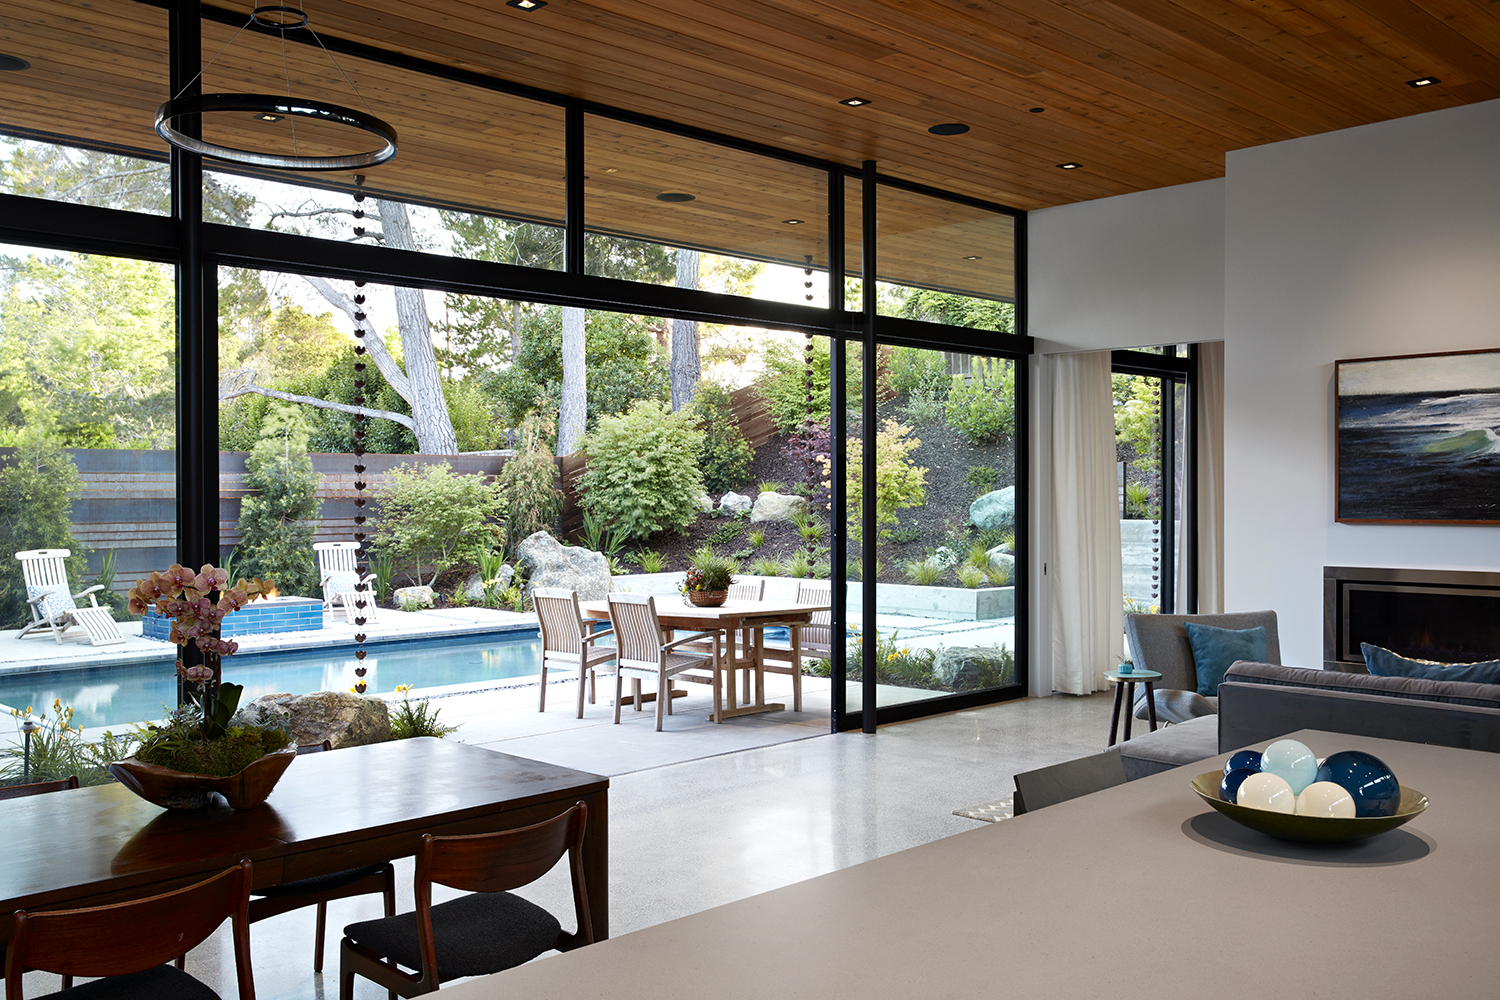 The floor to ceiling glass wall slides open for an uninterrupted connection between indoors and out.